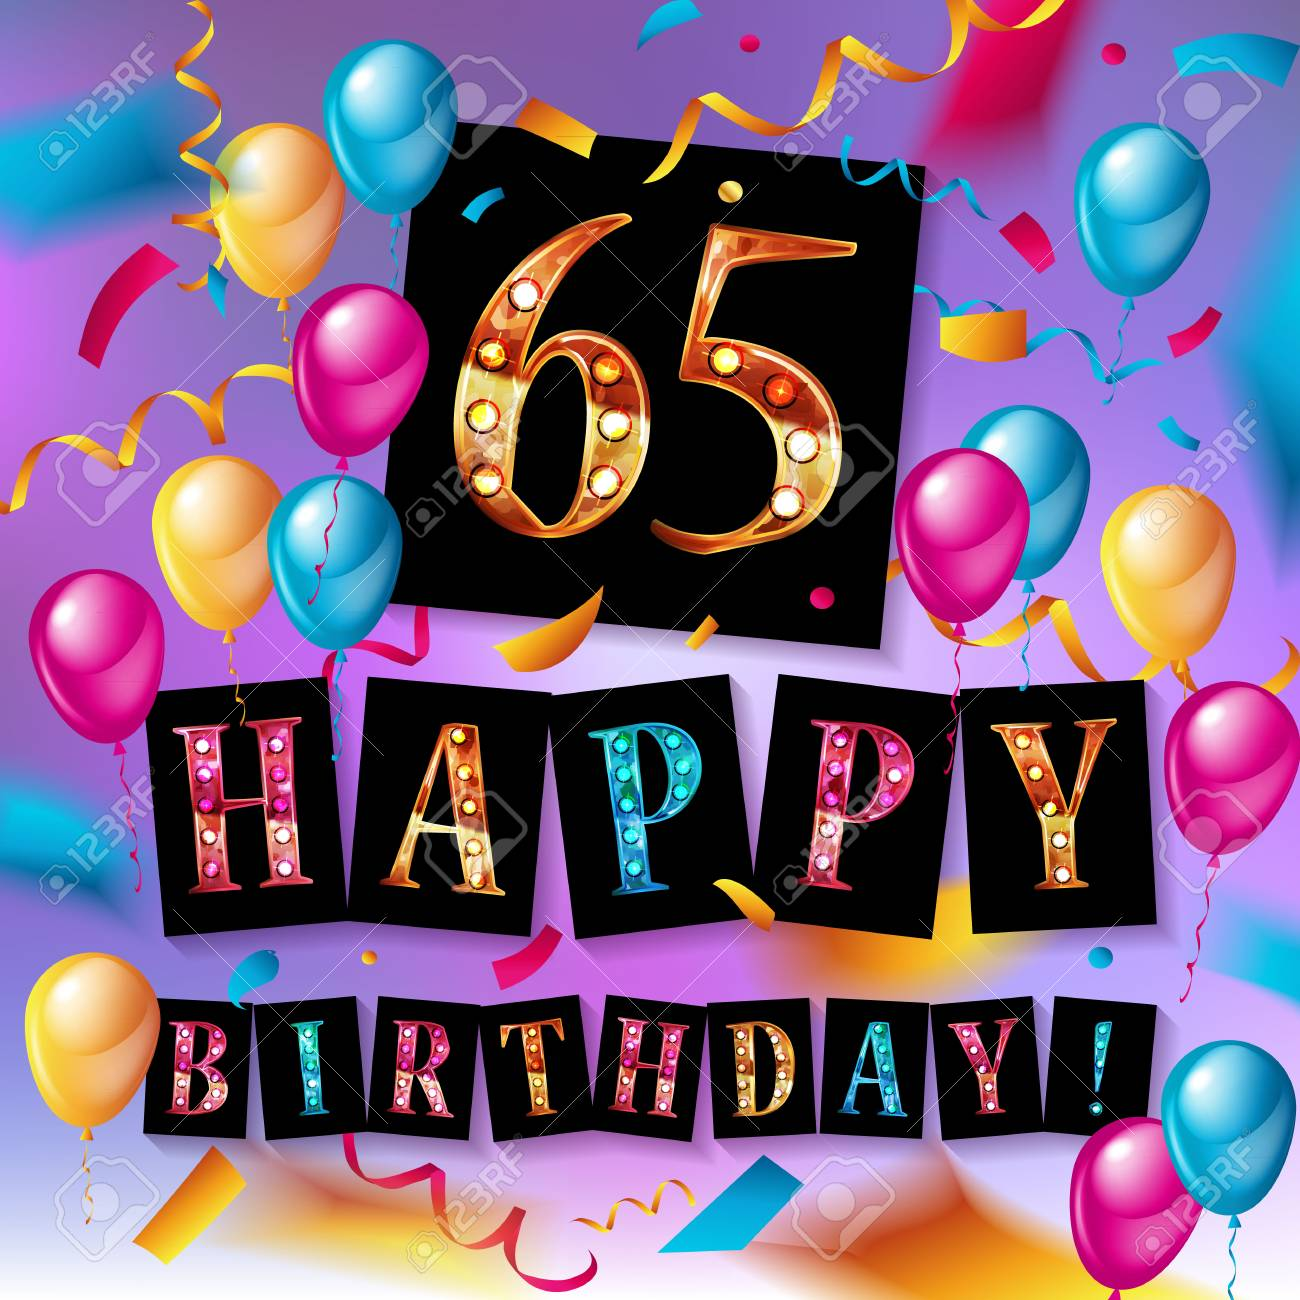 65th happy birthday poster template vector illustration.